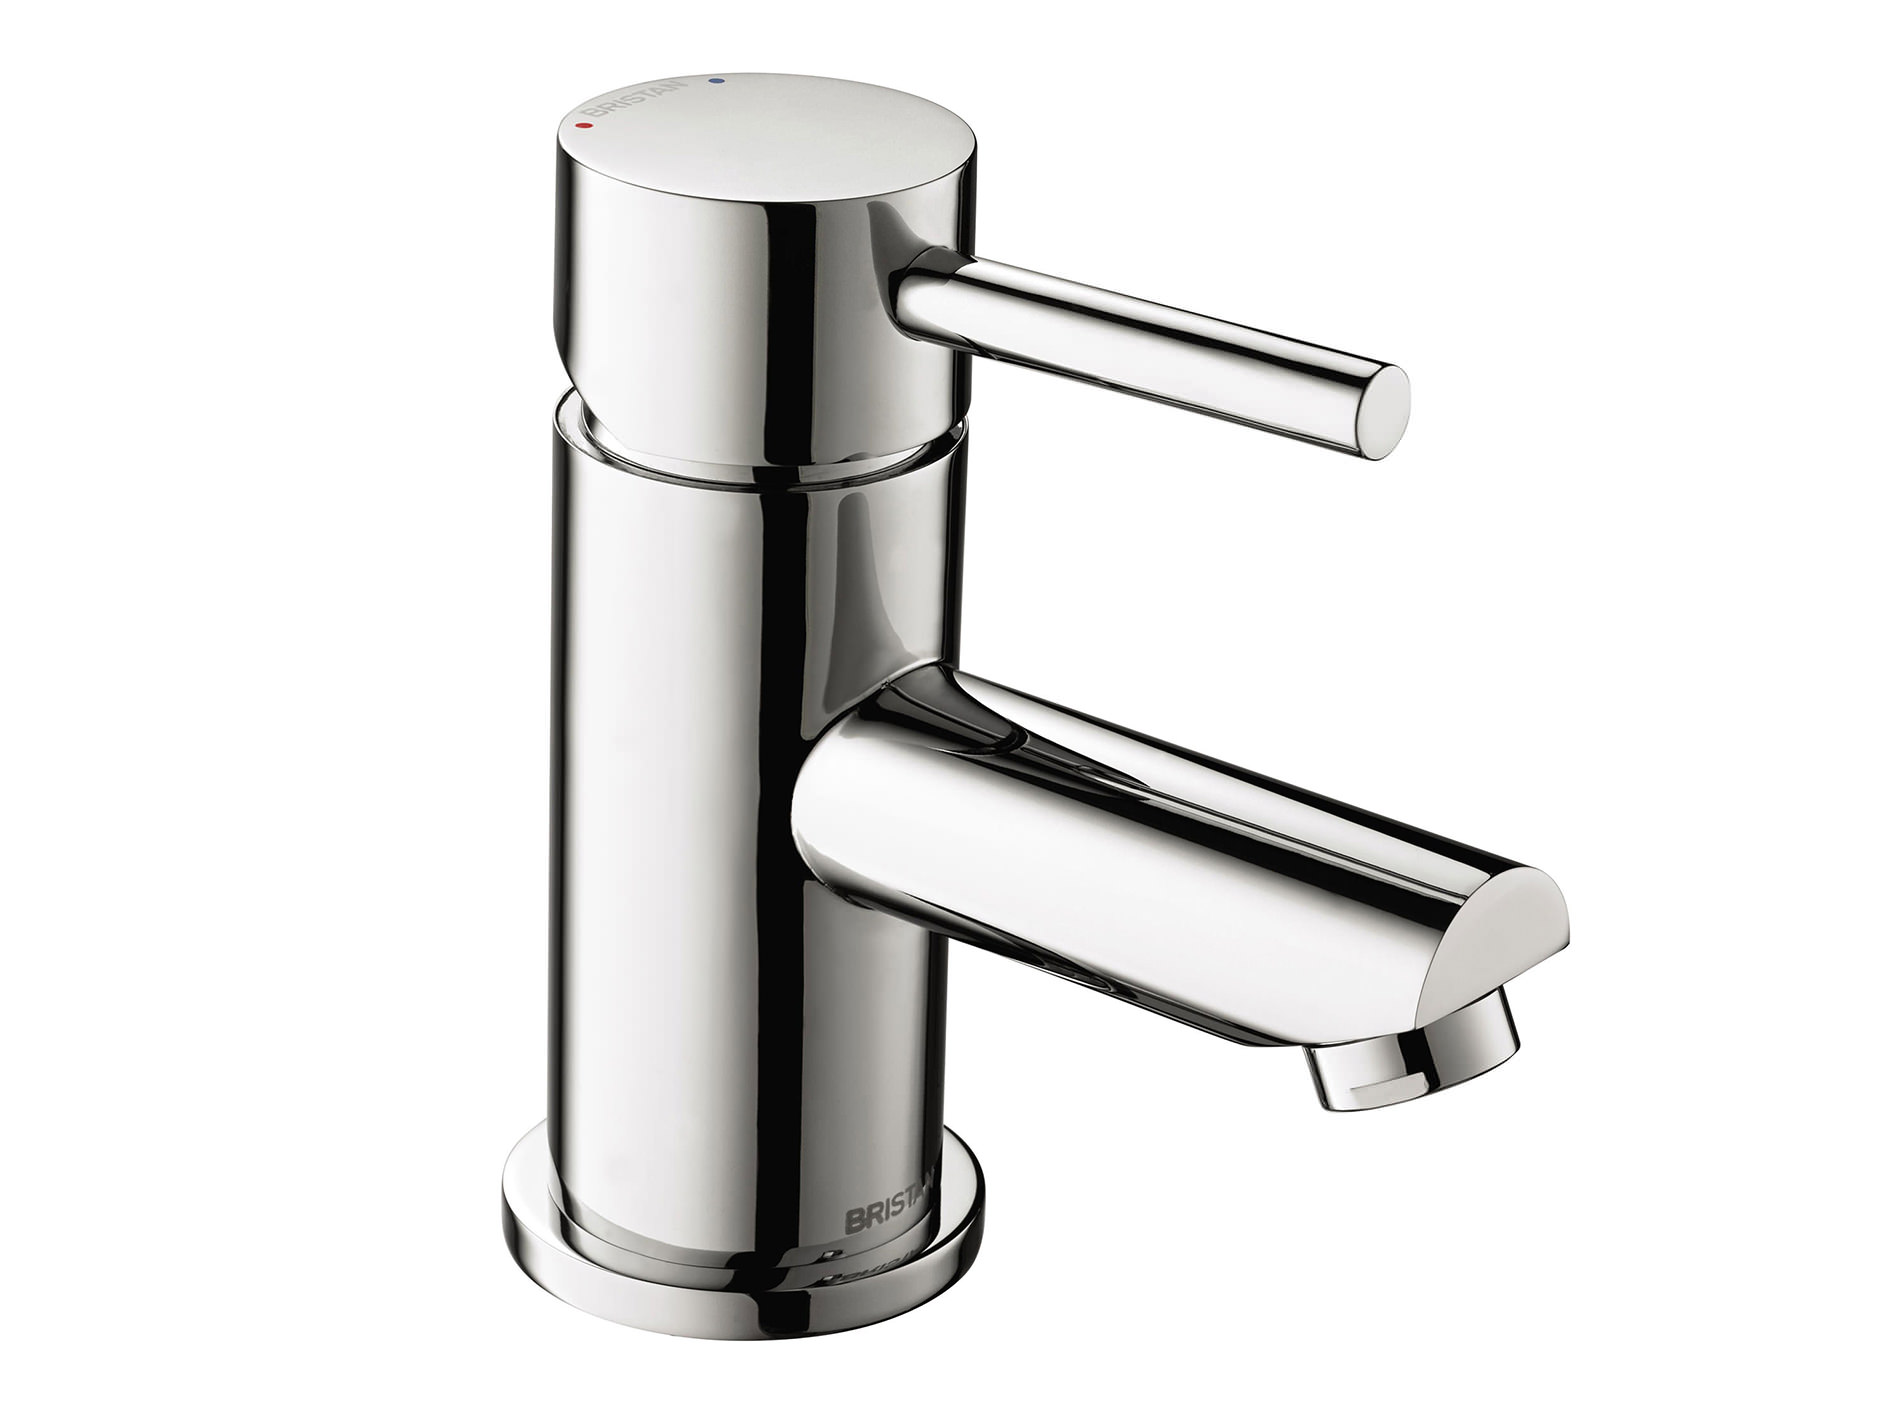 Sink bowl bathroom - Bristan Blitz Basin Mixer Tap With Clicker Waste Btz Bas C